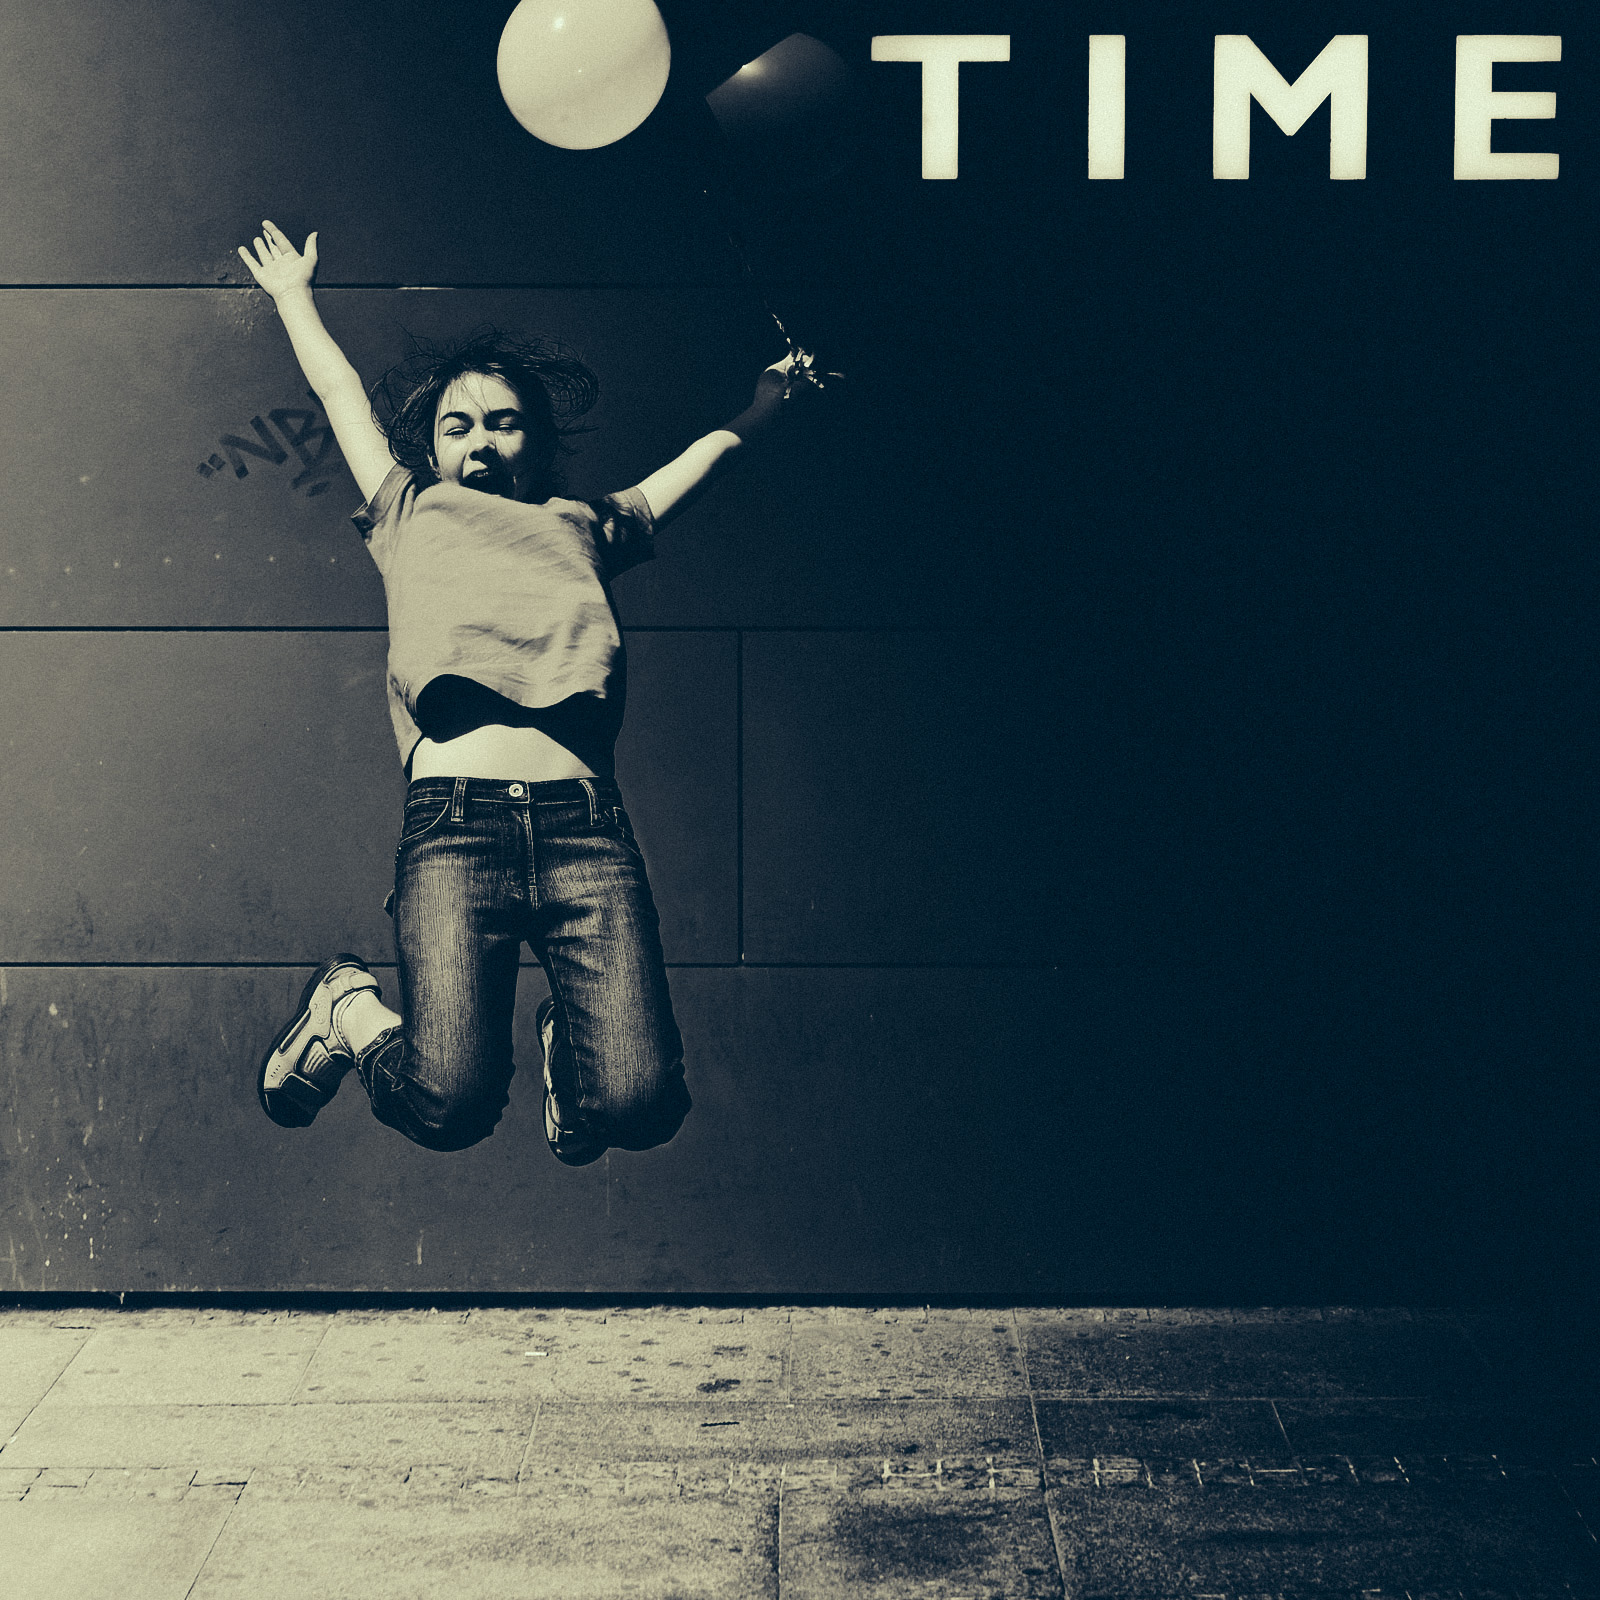 time-is-on-my-side.jpg?fit=1600%2C1600